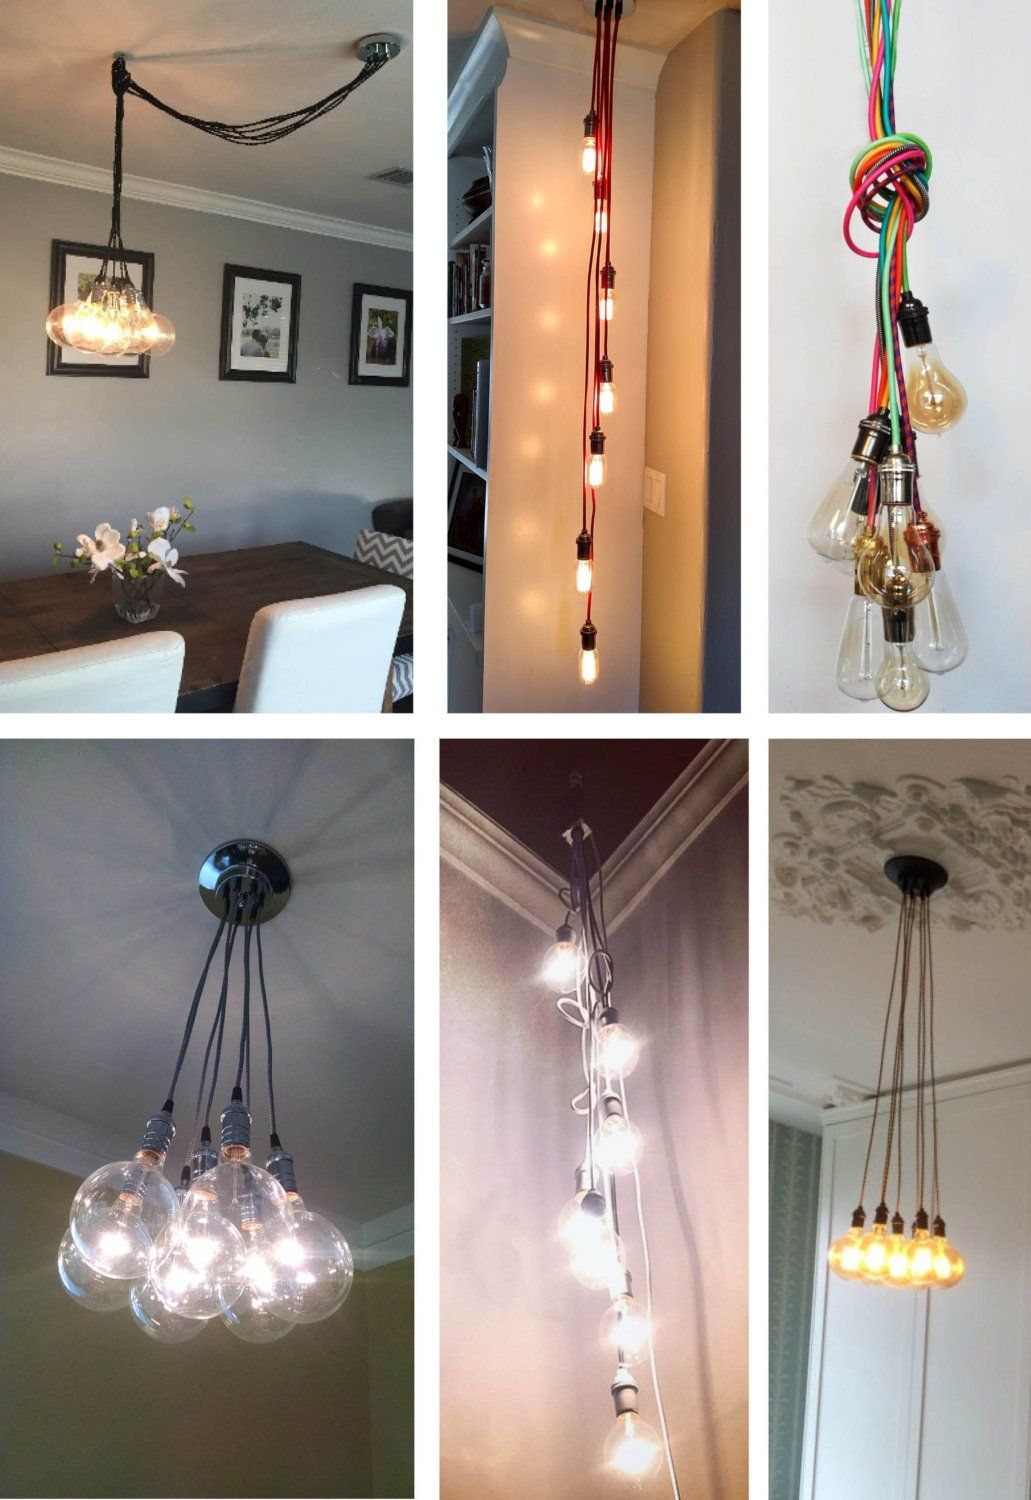 Modern Smoke Grey Led 7 Cluster Custom Any Colors Chandelier Multi Pendant Lighting Modern Cloth Cords Pendant Light Ceiling Fixture Lamp With Images Ceiling Pendant Lights Cluster Pendant Lighting Modern Pendant Light